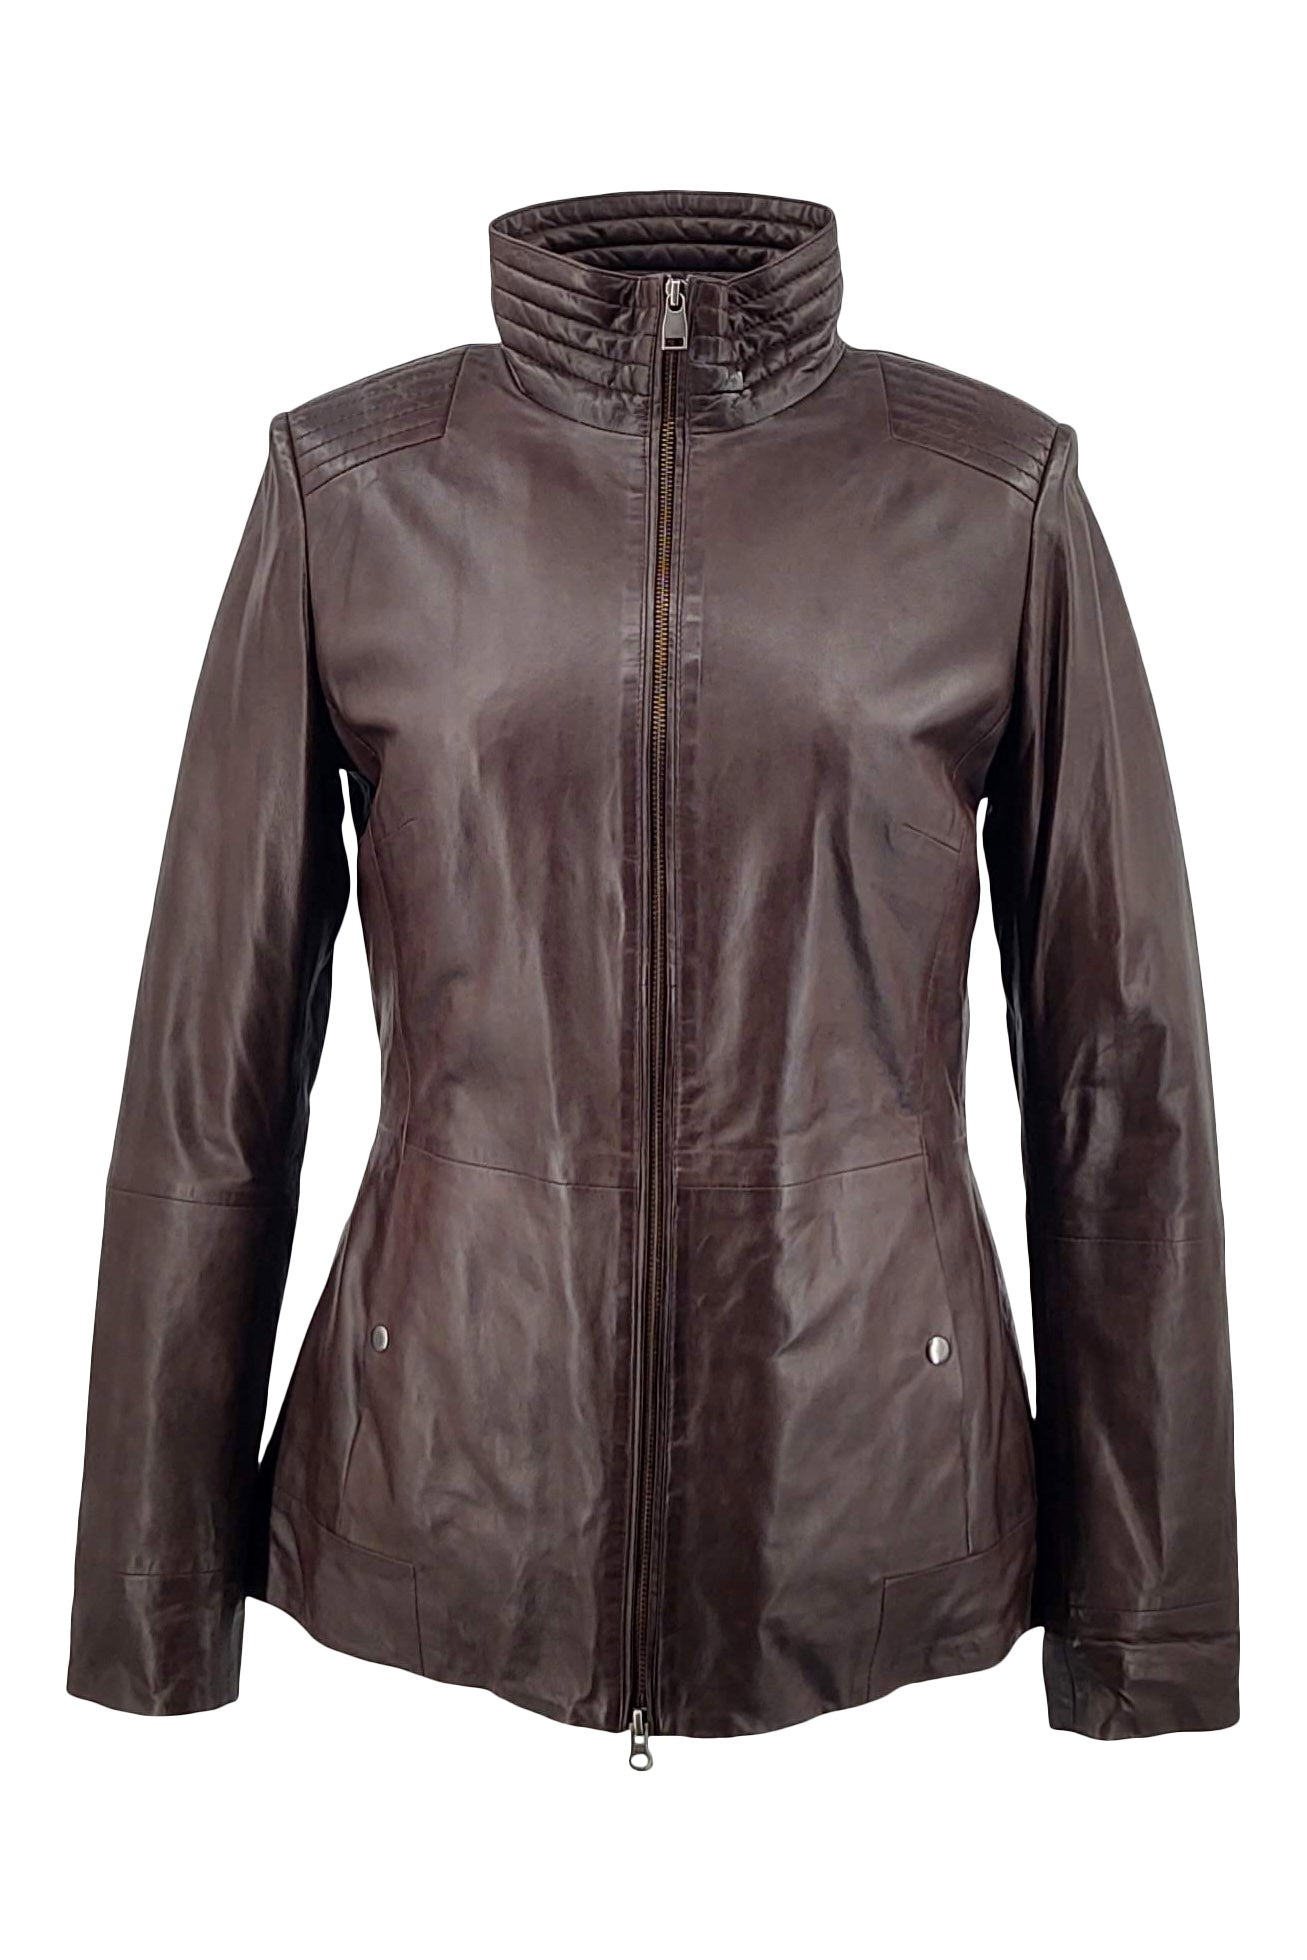 Gaida - Collar - Lamb Malli Leather - Women - Brown / Læder Skinds Jakke - Levinsky - Kvinde | STAMPE PELS